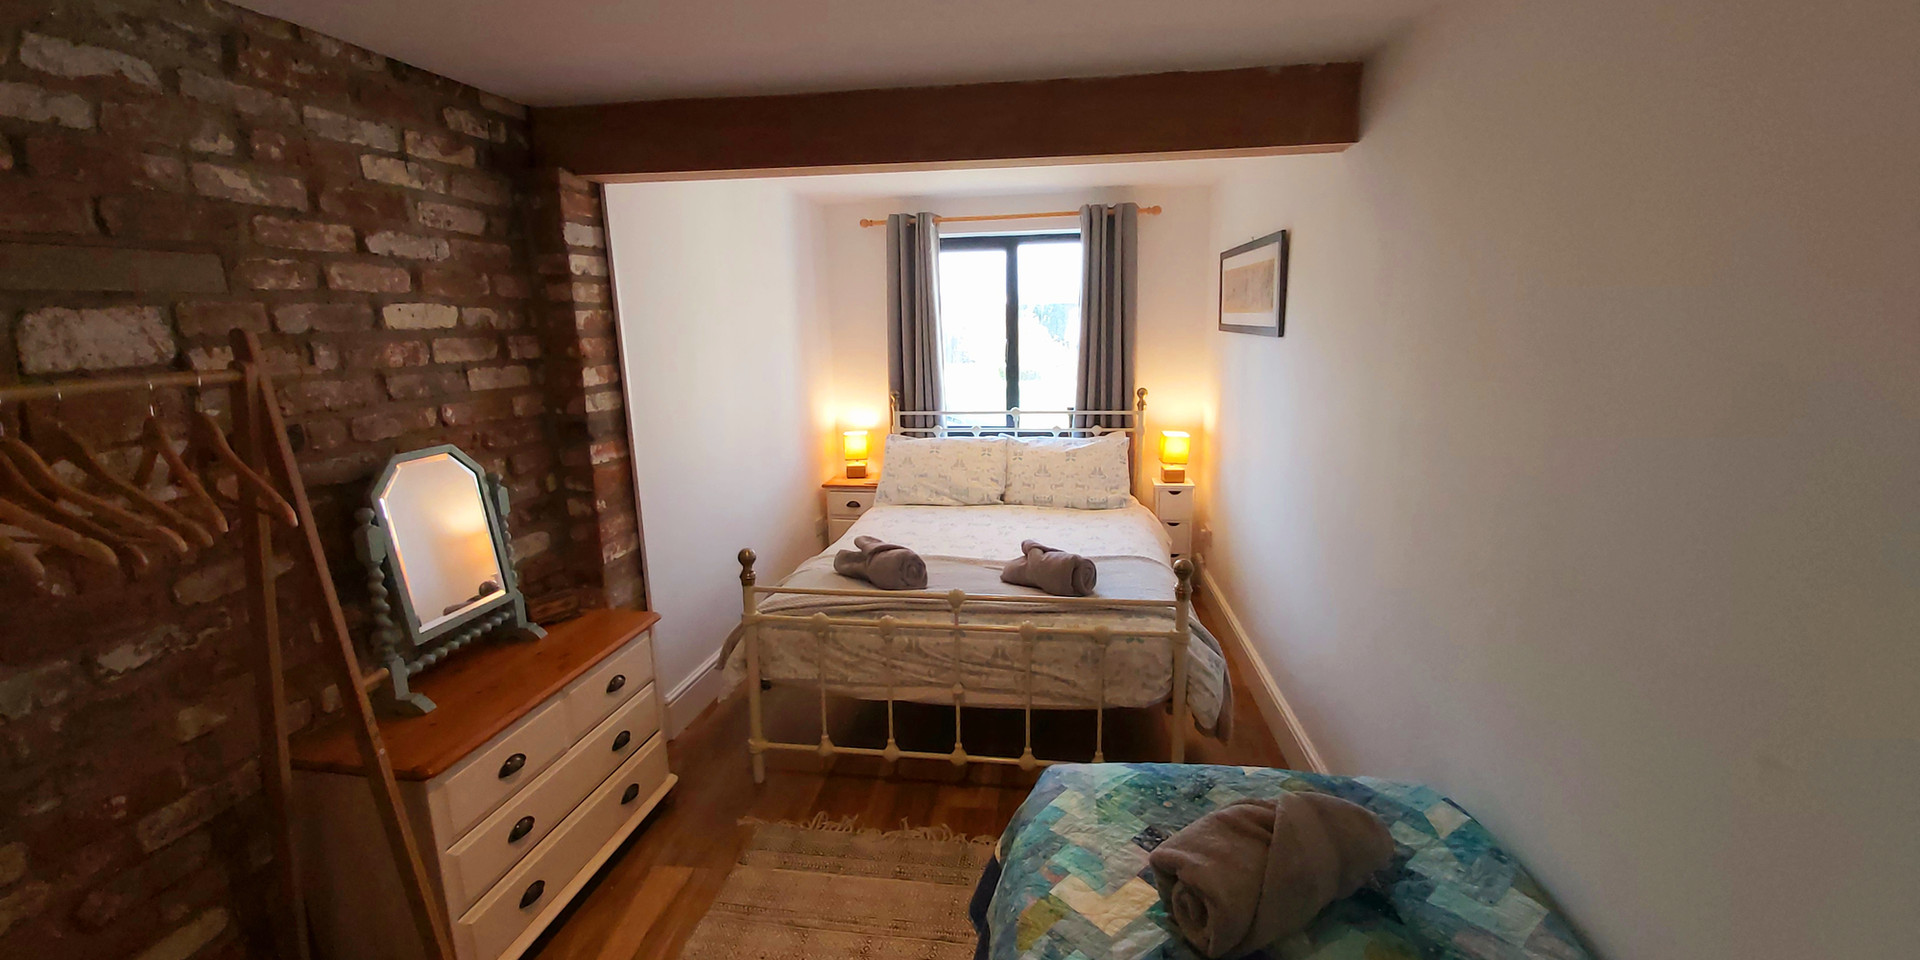 Bedroom 4, sleeps 3 (ground floor)